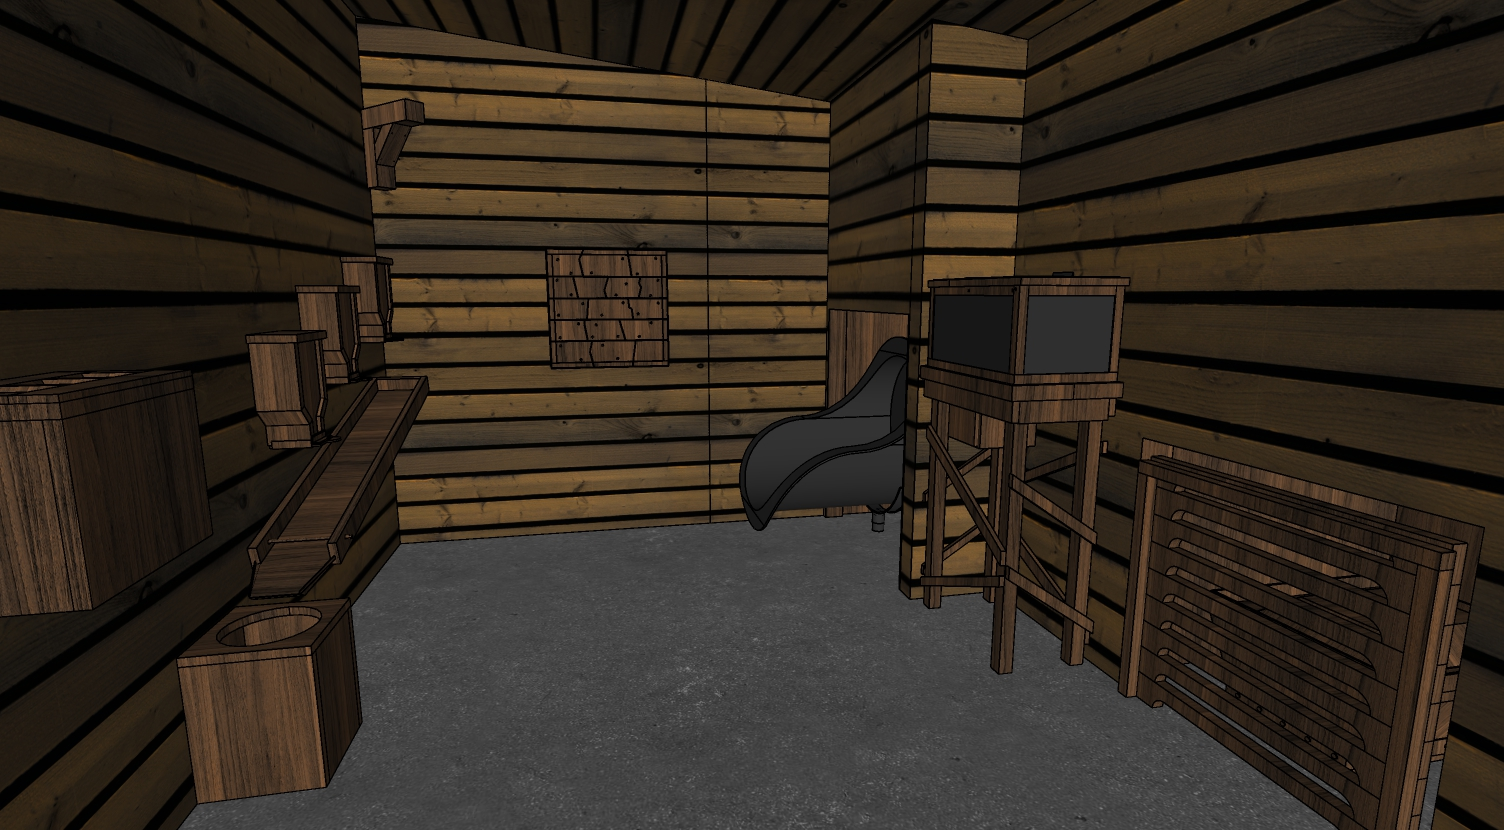 The Escape Game using SketchUp